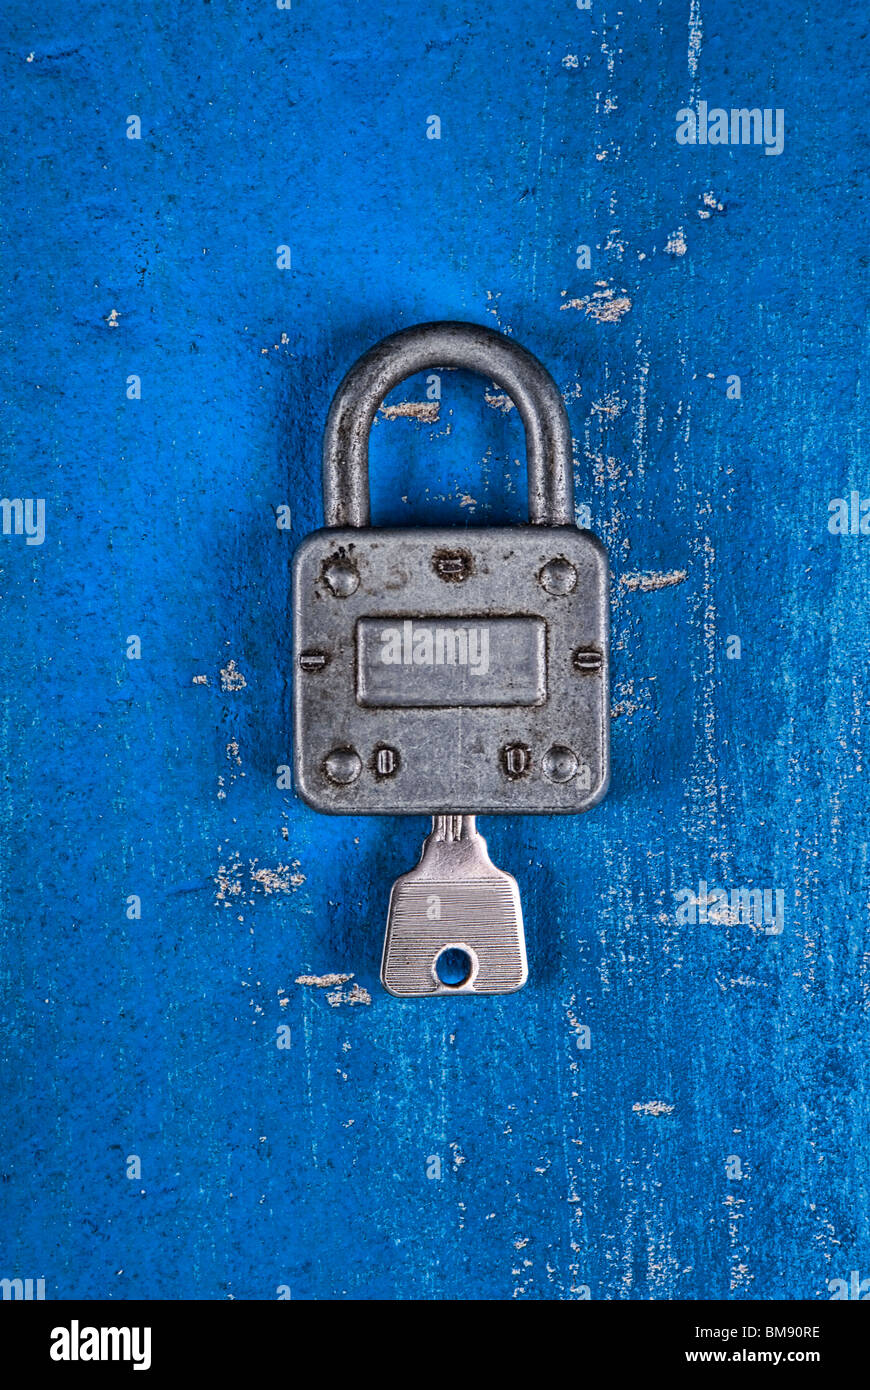 Old fashioned padlock with key on a blue wooden background - Stock Image